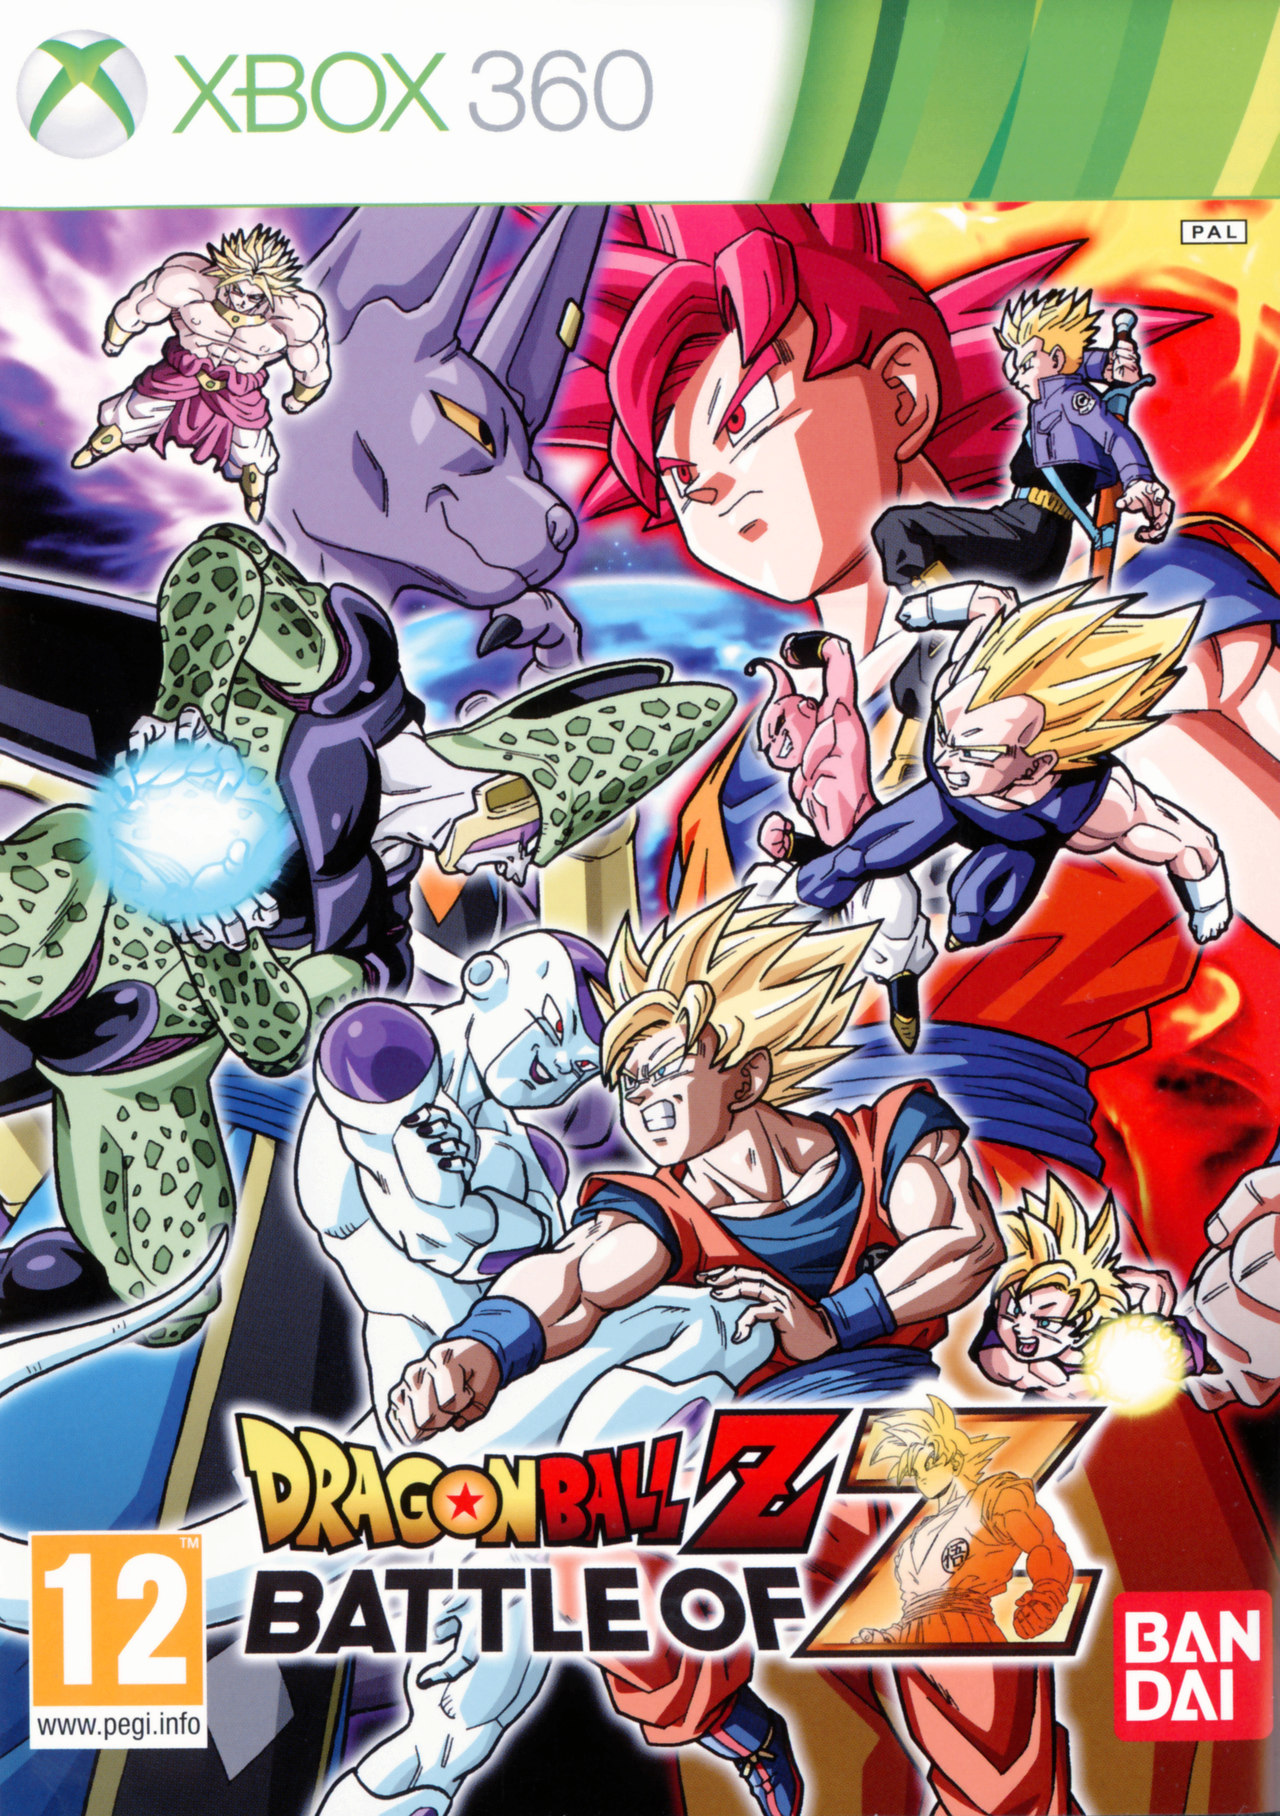 [MANGA/ANIME] Dragon Ball Z Jaquet20